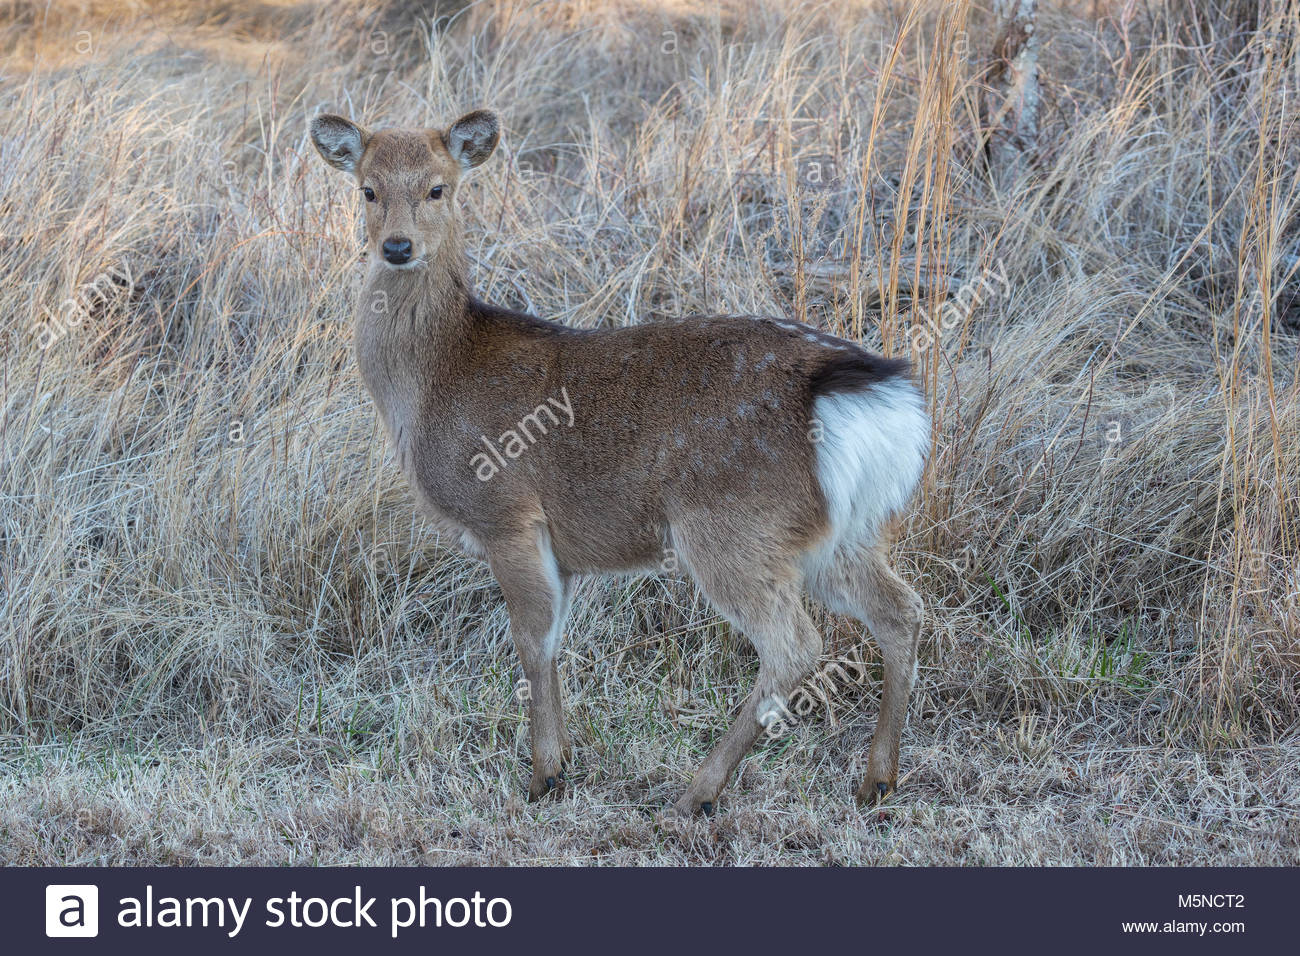 A Sika deer (Cervus nippon) poses in the grass along a marsh in the Chincoteague National Wildlife Refuge on Assateague - Stock Image